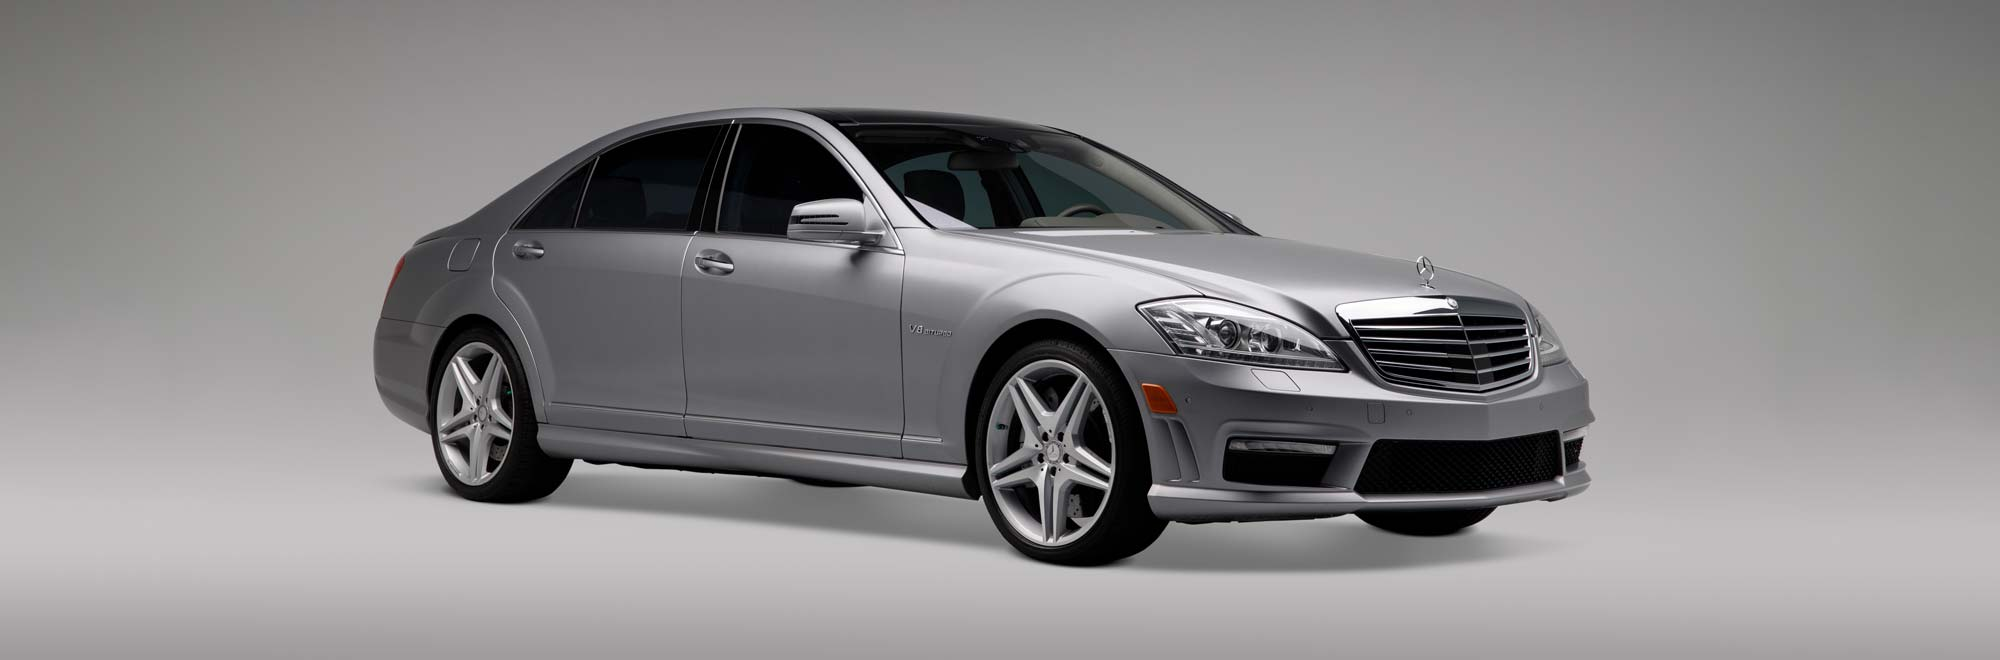 2011 Mercedes-Benz S63 AMG - The JBS Collection